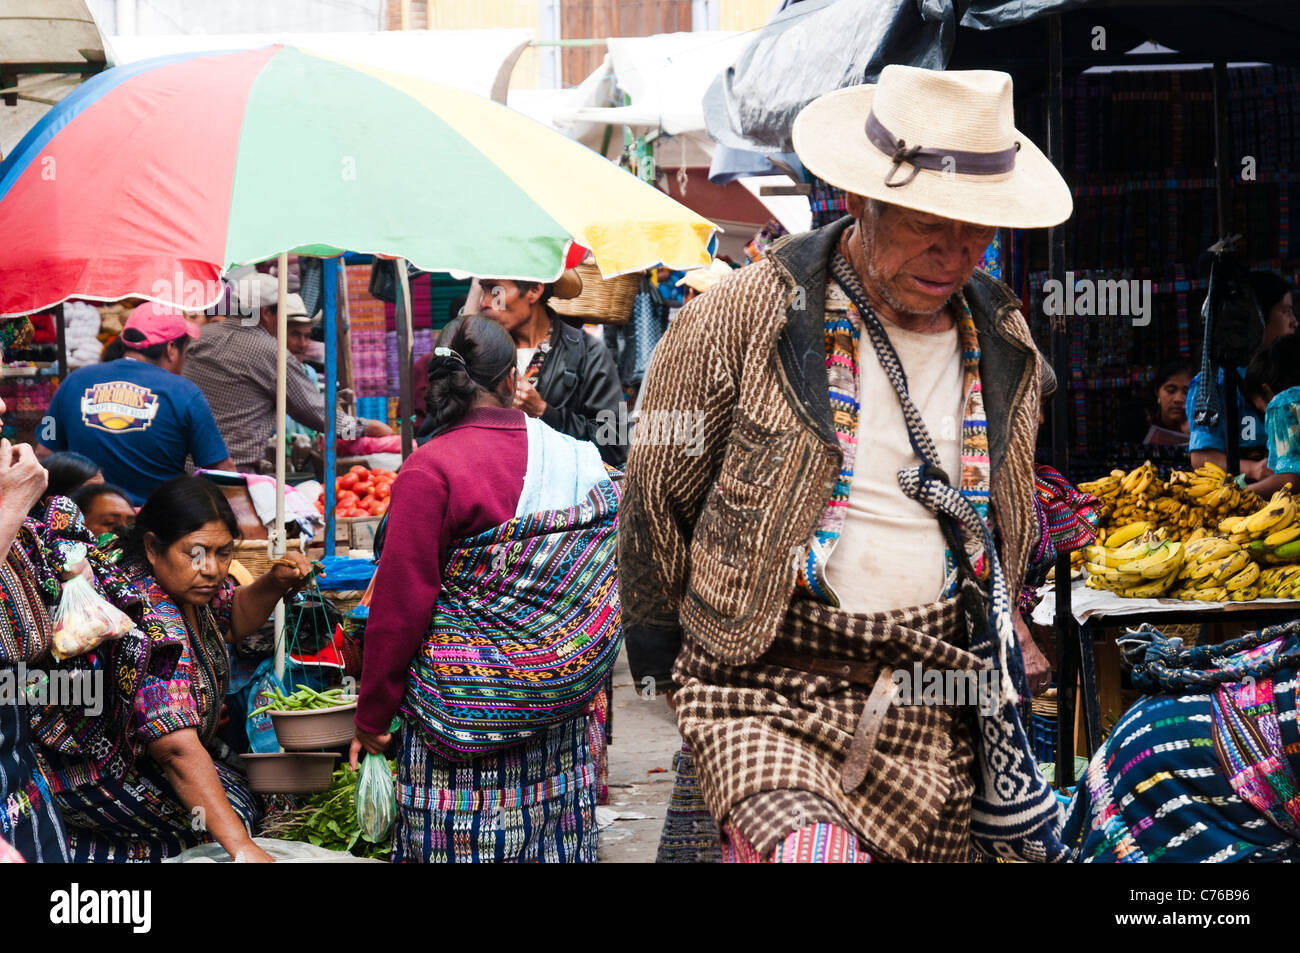 inside the traditional Solola Market, Guatemala, Central America - Stock Image